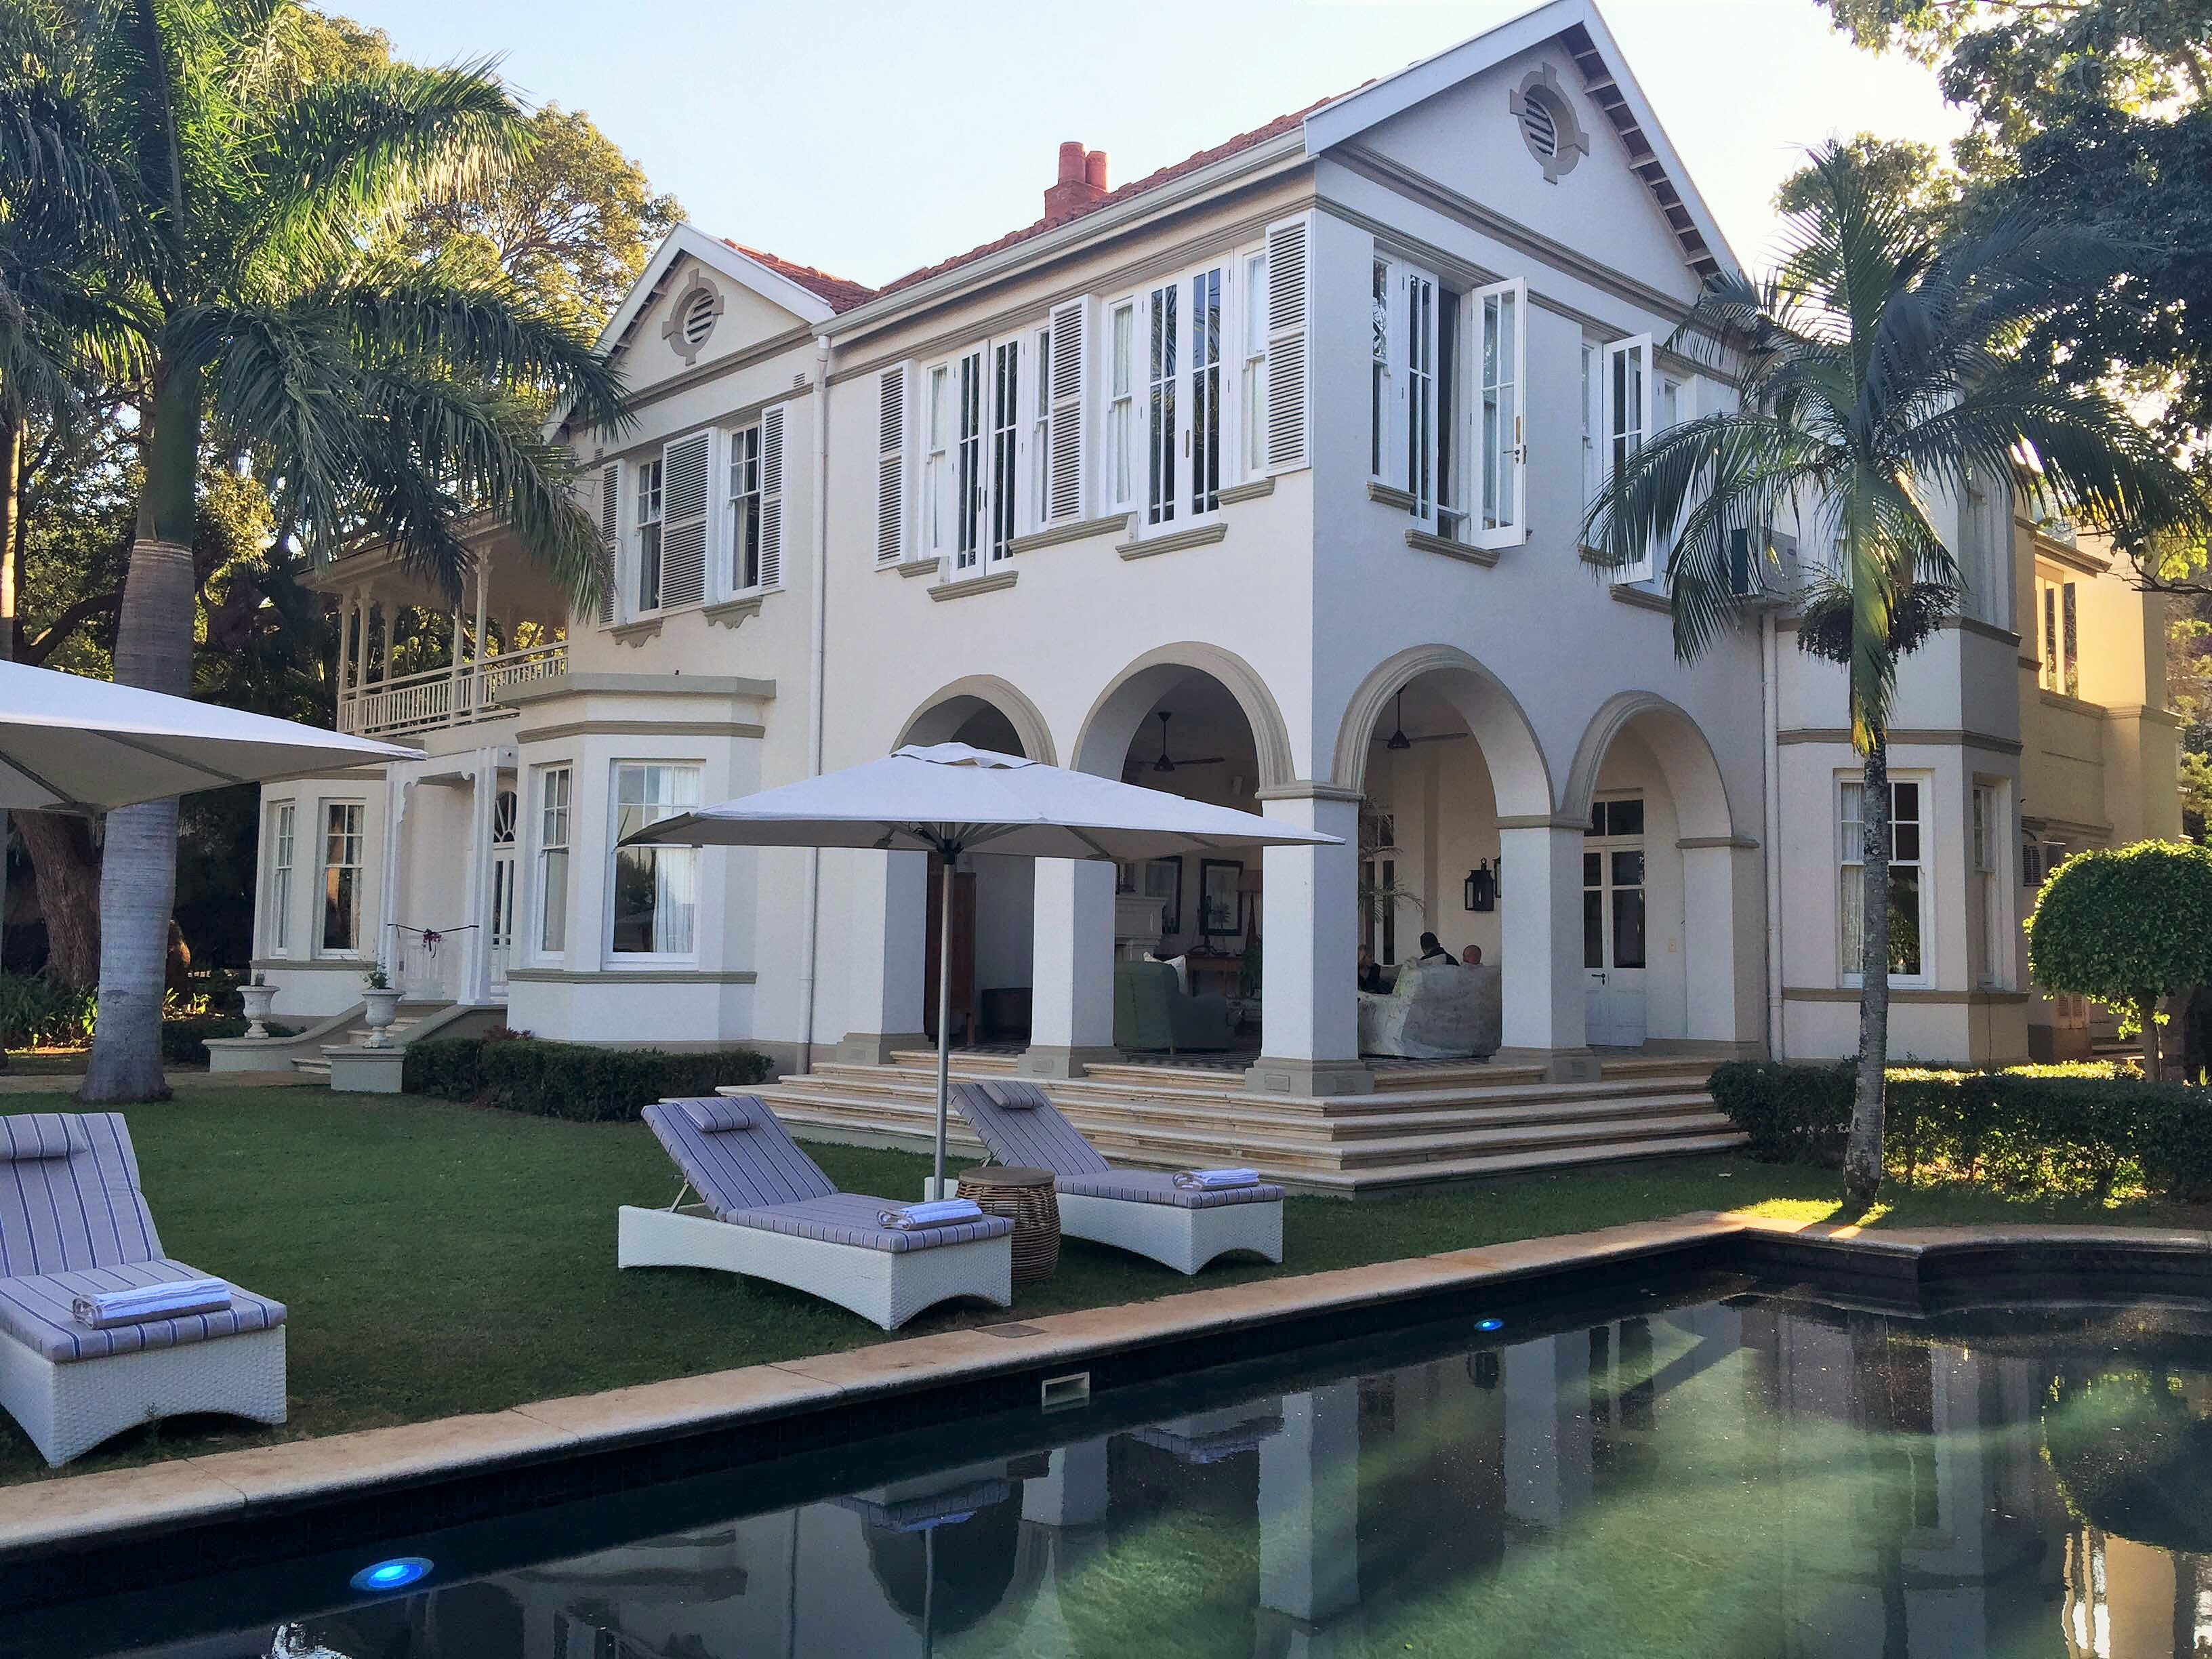 Luxury accommodation in the heart of Durban